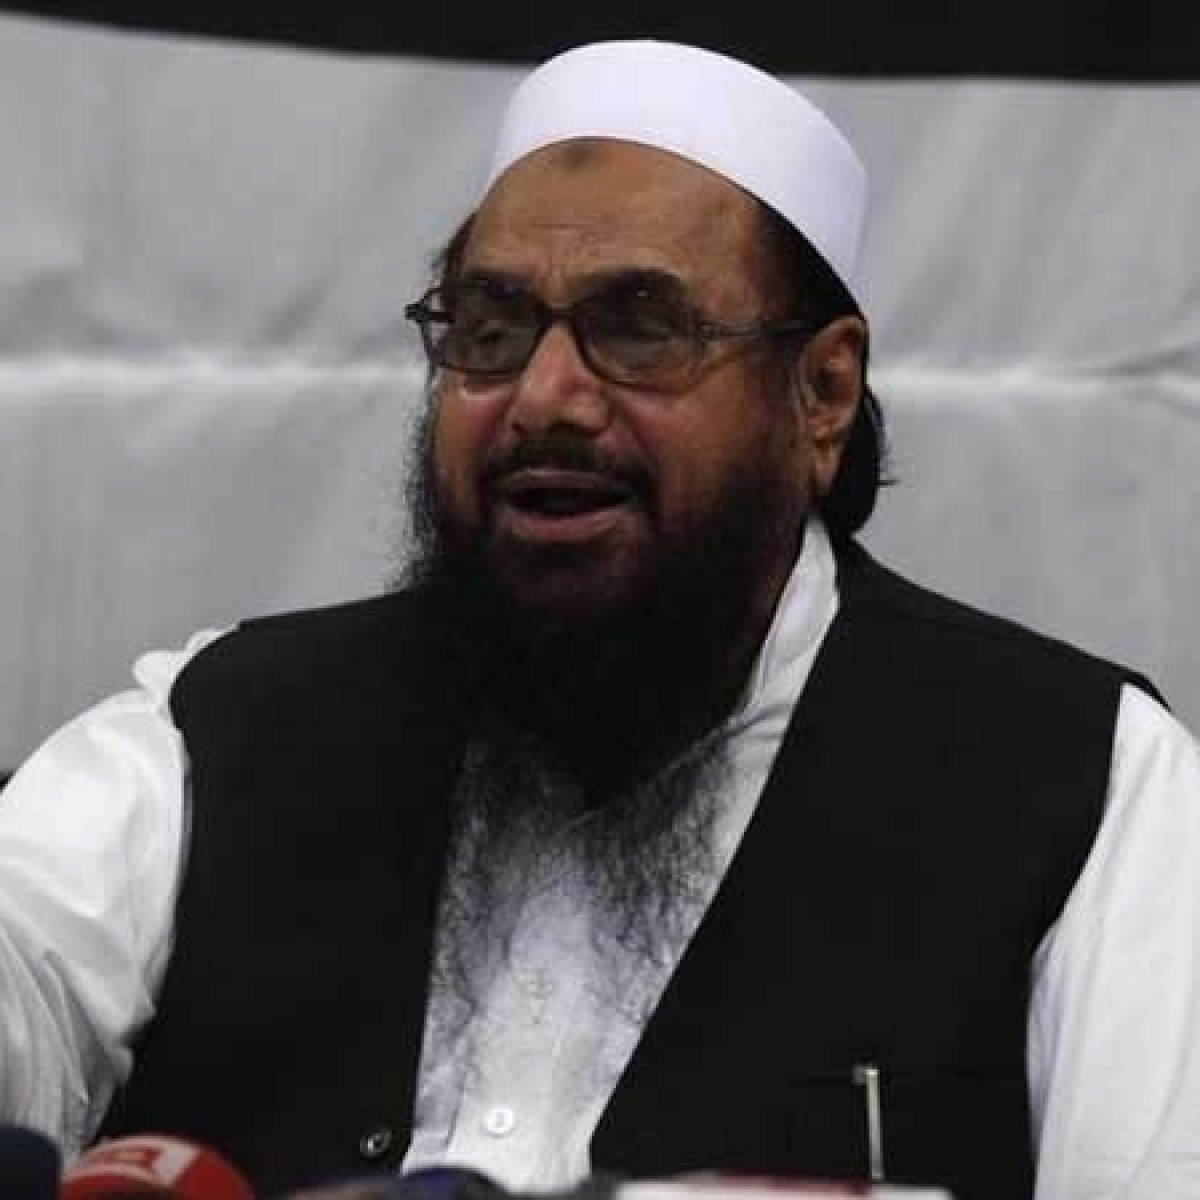 Pakistan approaches UNSC to allow release of monthly expenses for terrorist Hafiz Saeed, committee allows request